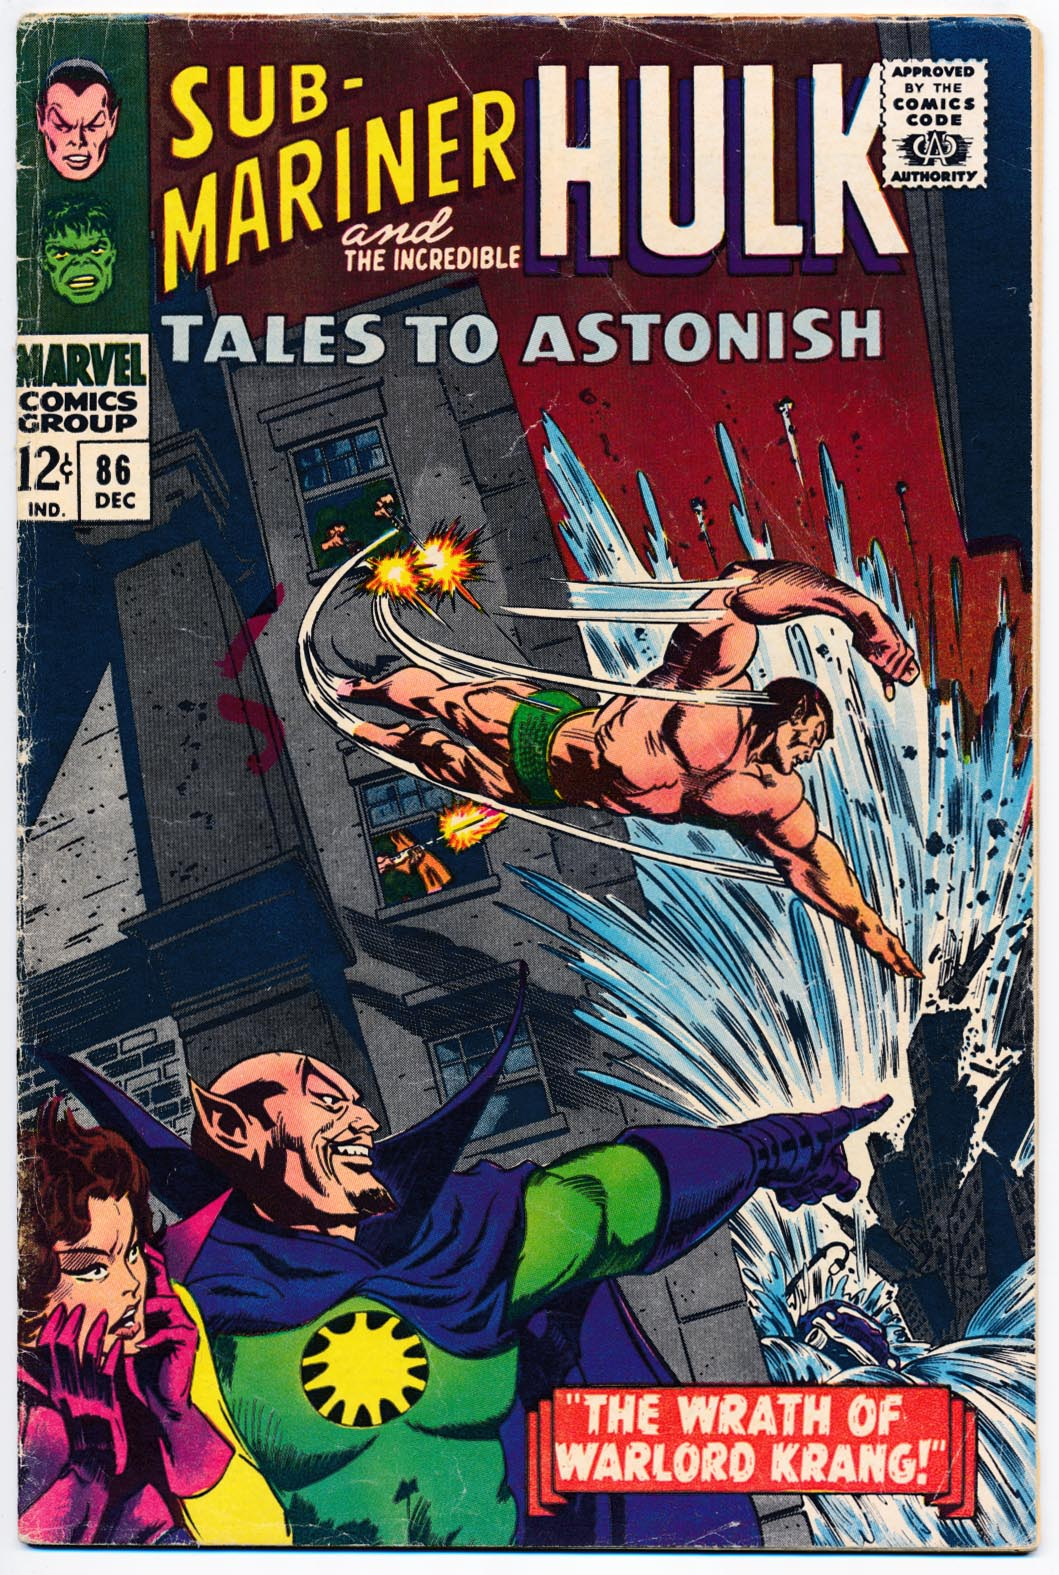 Tales To Astonish 86 -G